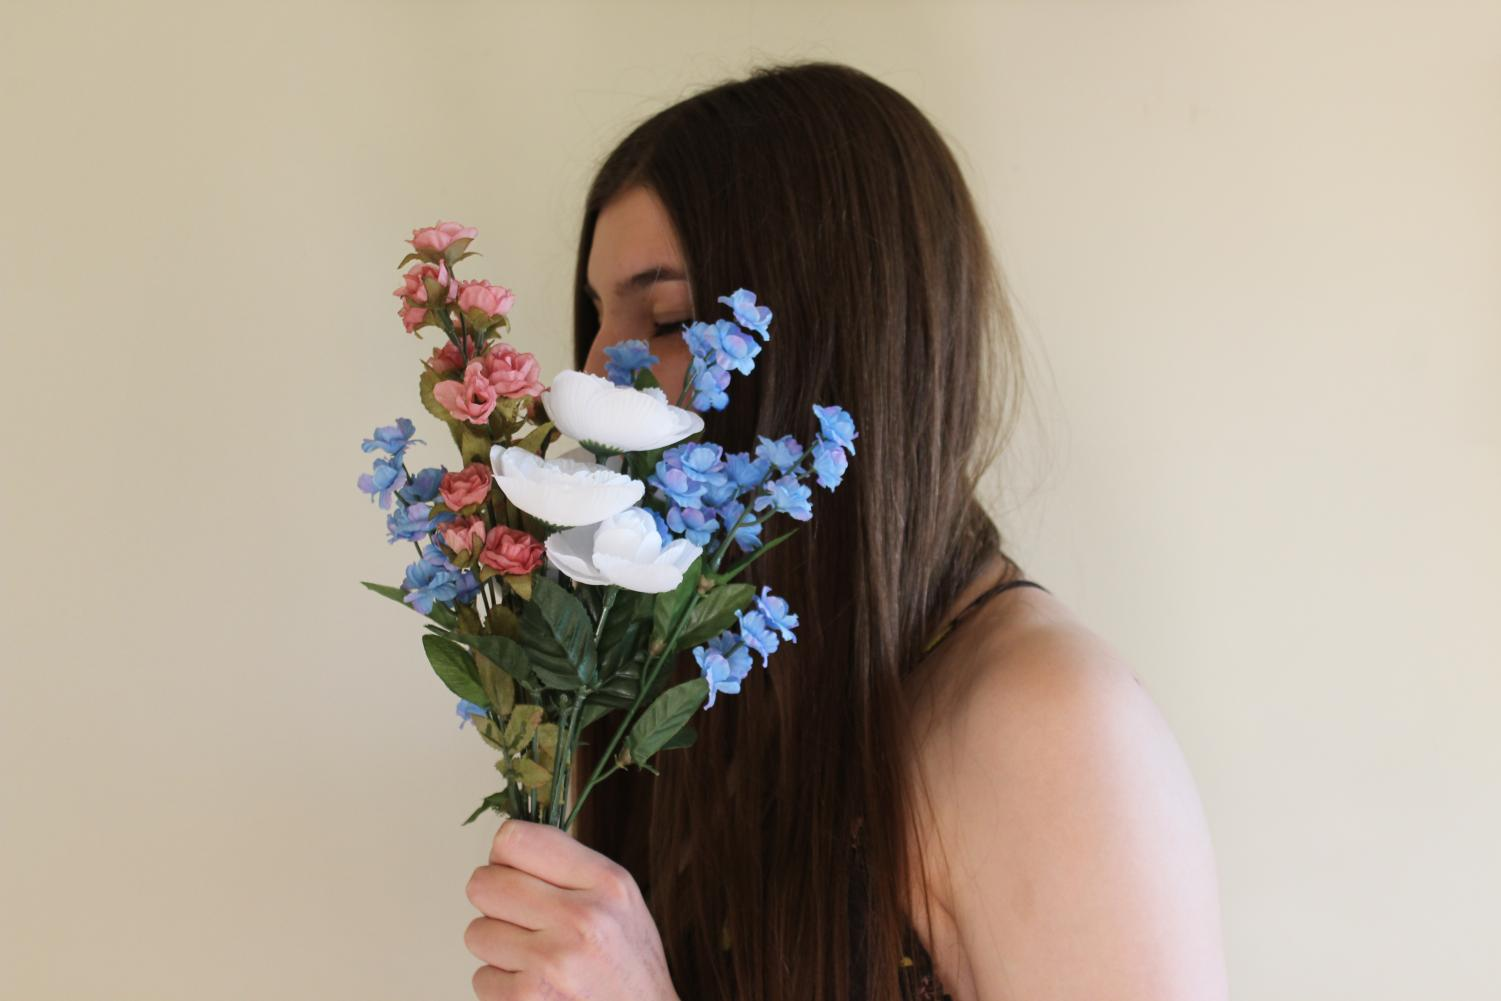 Tierney Keegan holds a bouquet of flowers resembling Ethereal Clothing Company's logo.